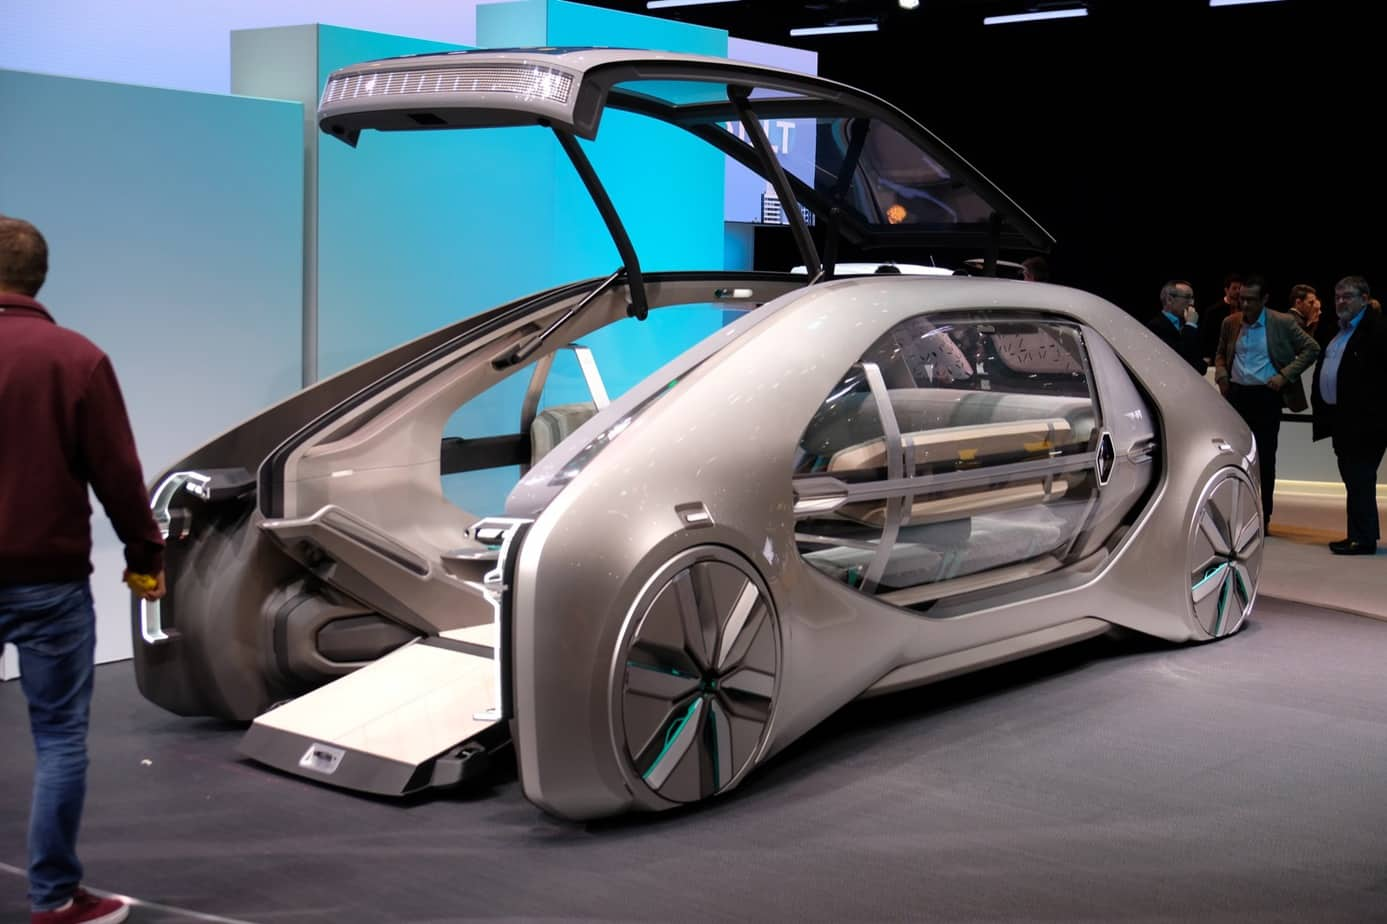 renault s ez go envisions walk on walk off urban ev mobility x tech news. Black Bedroom Furniture Sets. Home Design Ideas